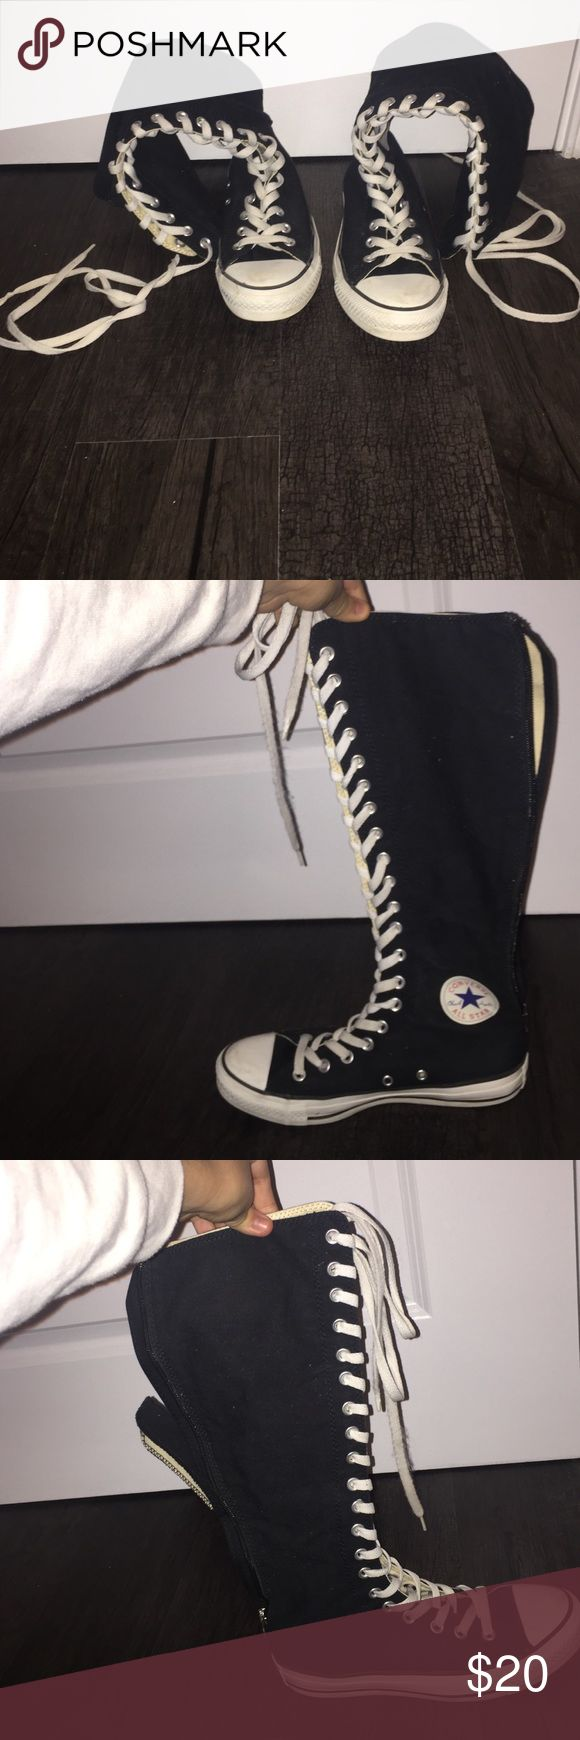 Knee high all star converse KNEE high converse with a zip up back Converse Shoes Lace Up Boots